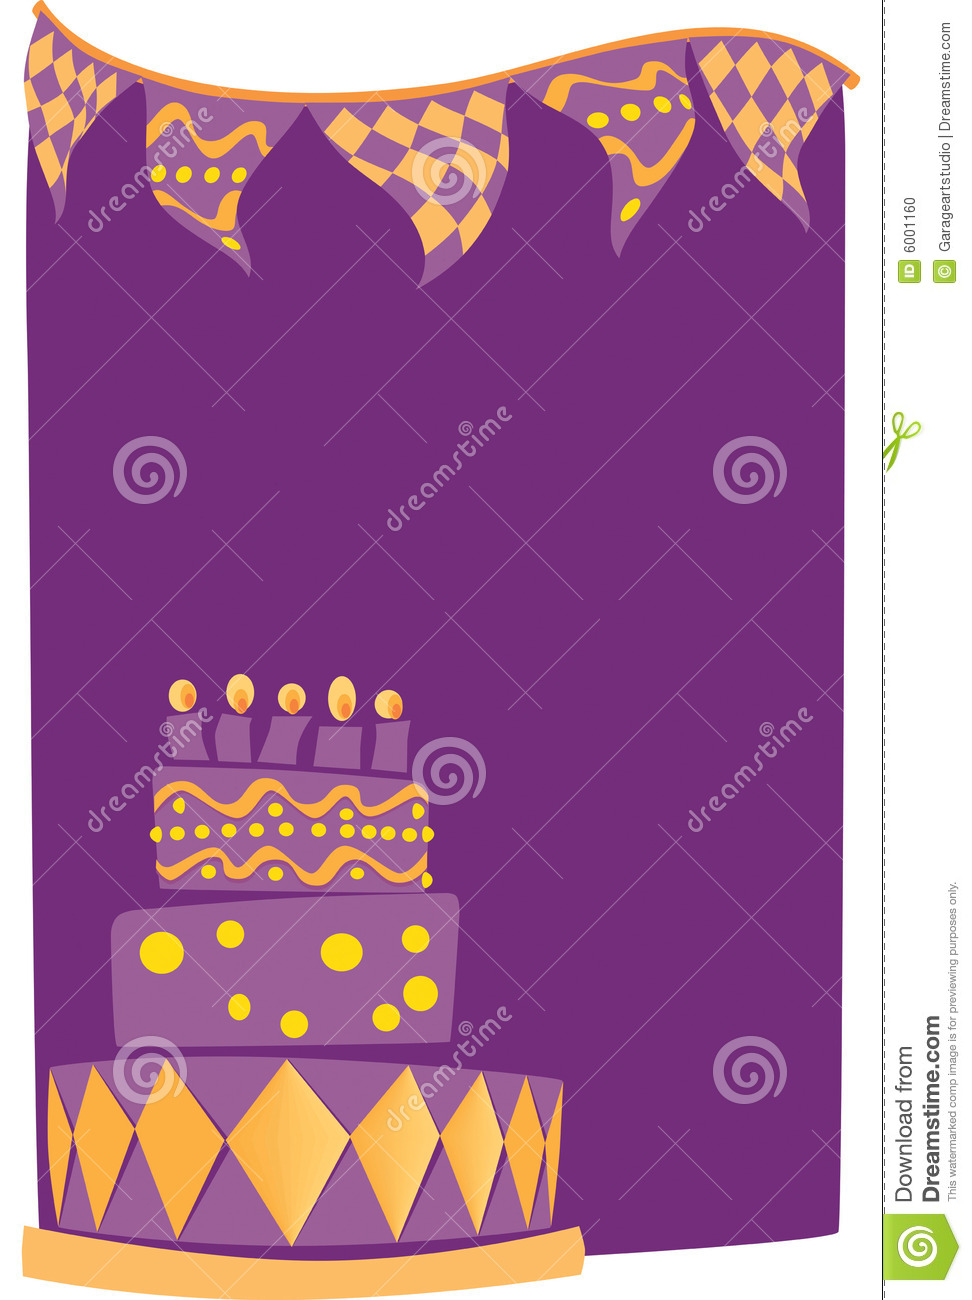 Birthday Cake Background Stock Photo - Image: 6001160